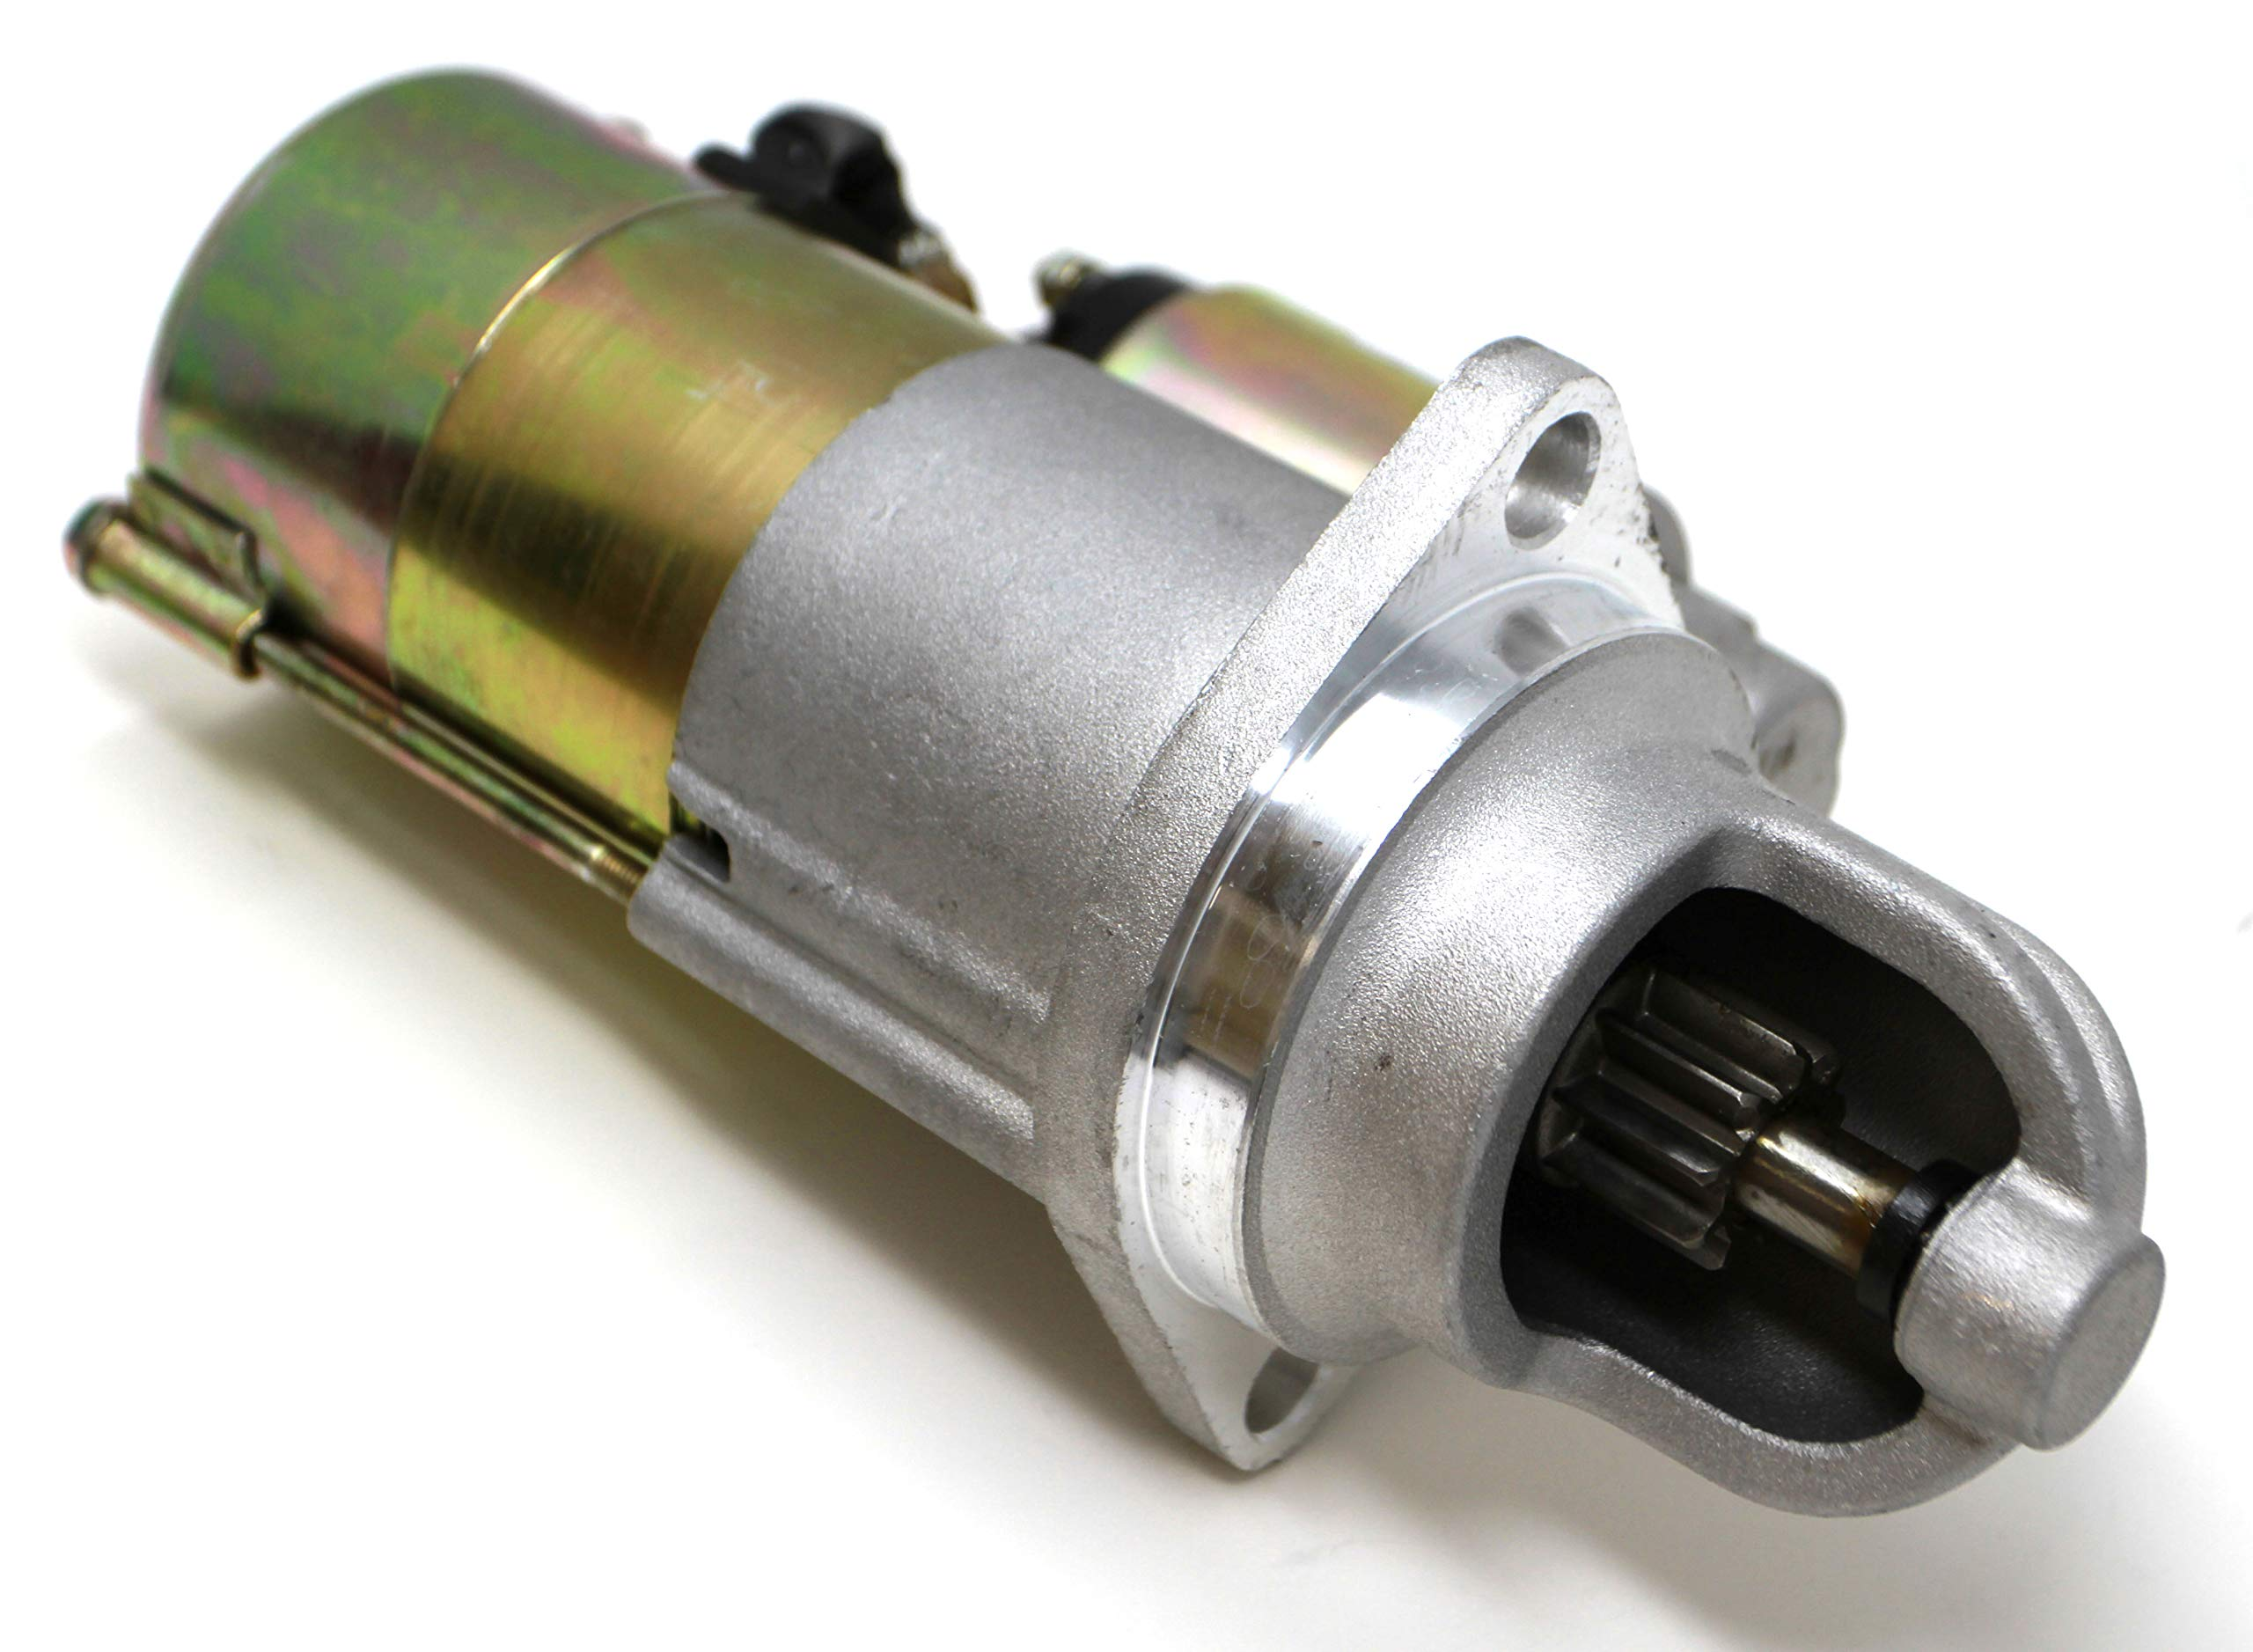 ELM Products Compatible with Mercruiser 470 OMC Volvo I/O Starter 12V 9 Tooth CW Rotation 30120 30456 18-5901 18-5907